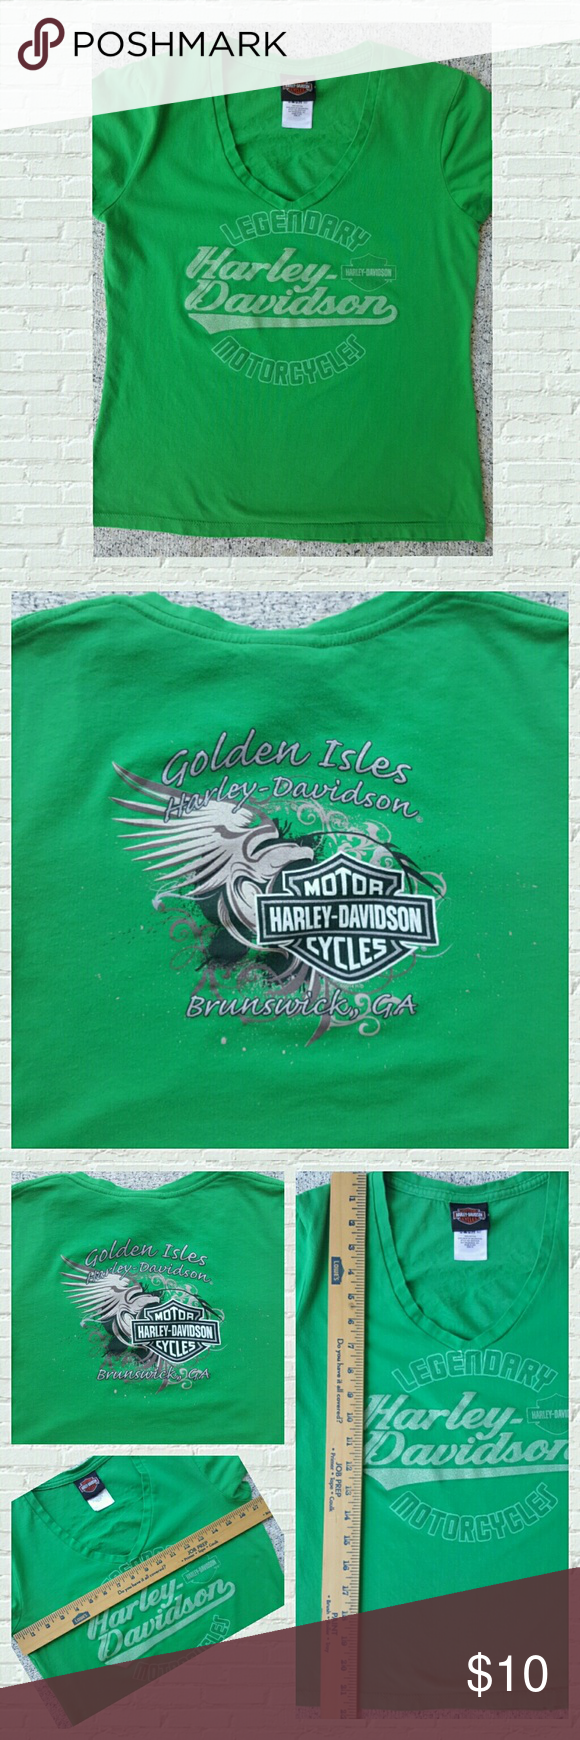 Harley Davidson Women's T-shirt Great used condition, beautiful green Harley Davidson fitted t-shirt. A must have for any St. Patrick's day celebration 😎 Size medium but is a fitted t-shirt please see pics for measurements.  100% cotton  Any reasonable offer will be considered  Comes from a smoke free home 🌸 Harley-Davidson Tops Tees - Short Sleeve